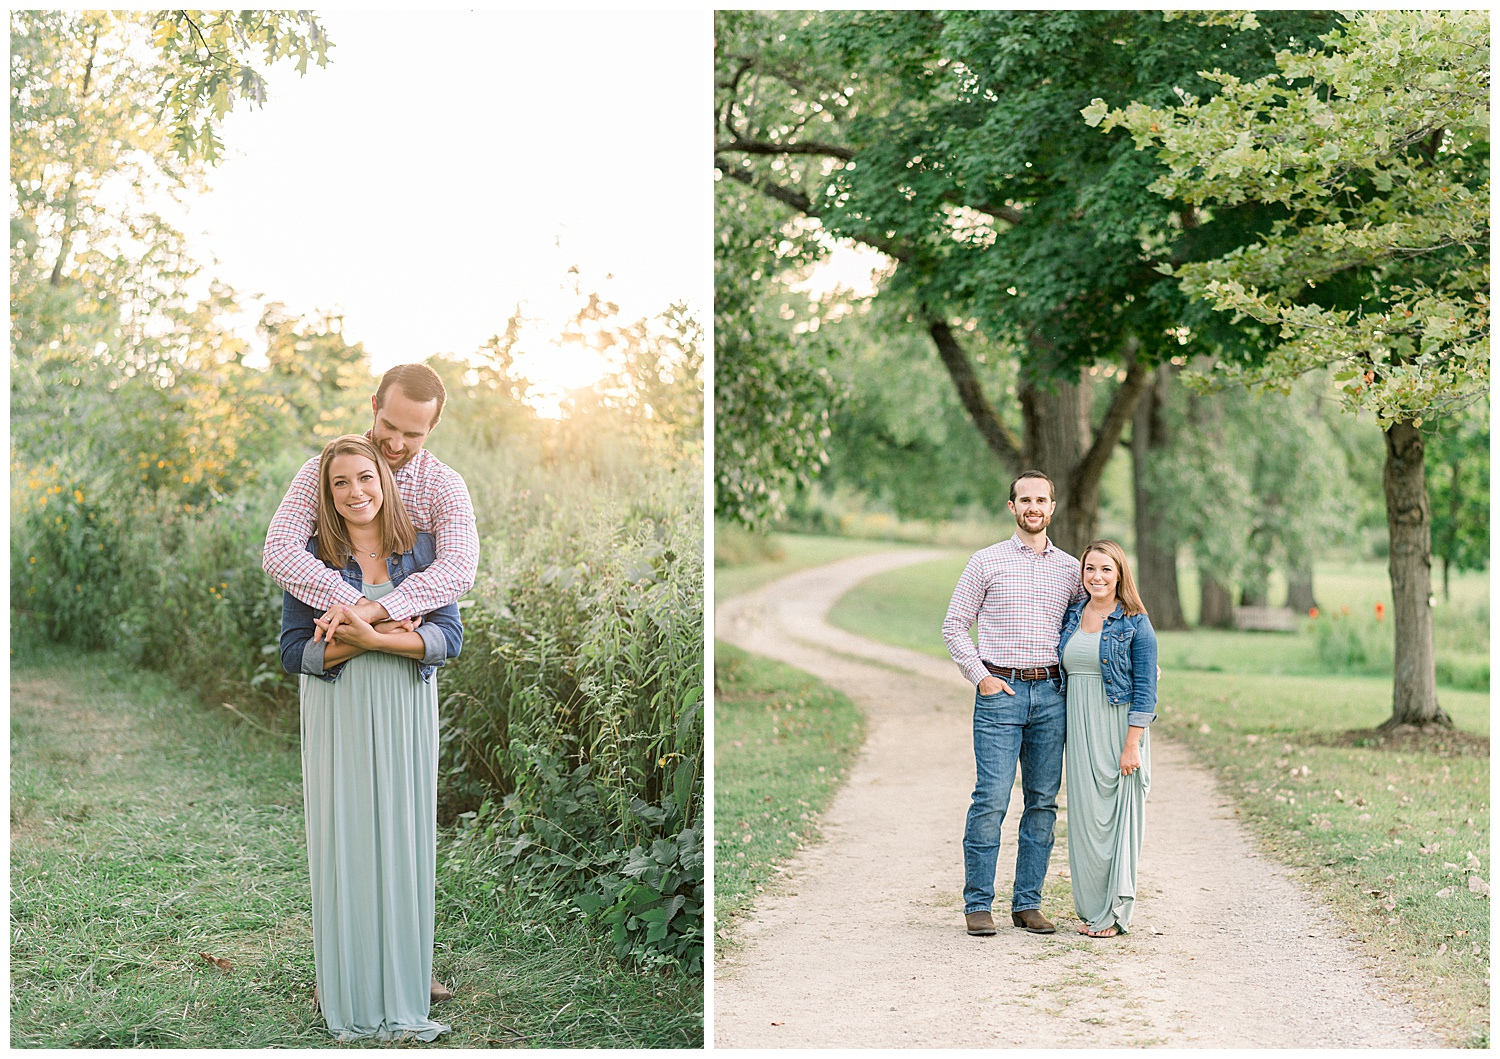 Cox_Arboretum_Anniversary_Session_Miamisburg_Ohio_Cassandra_Janina_Photography_Ohio_Wedding_Photographer_0275.jpg